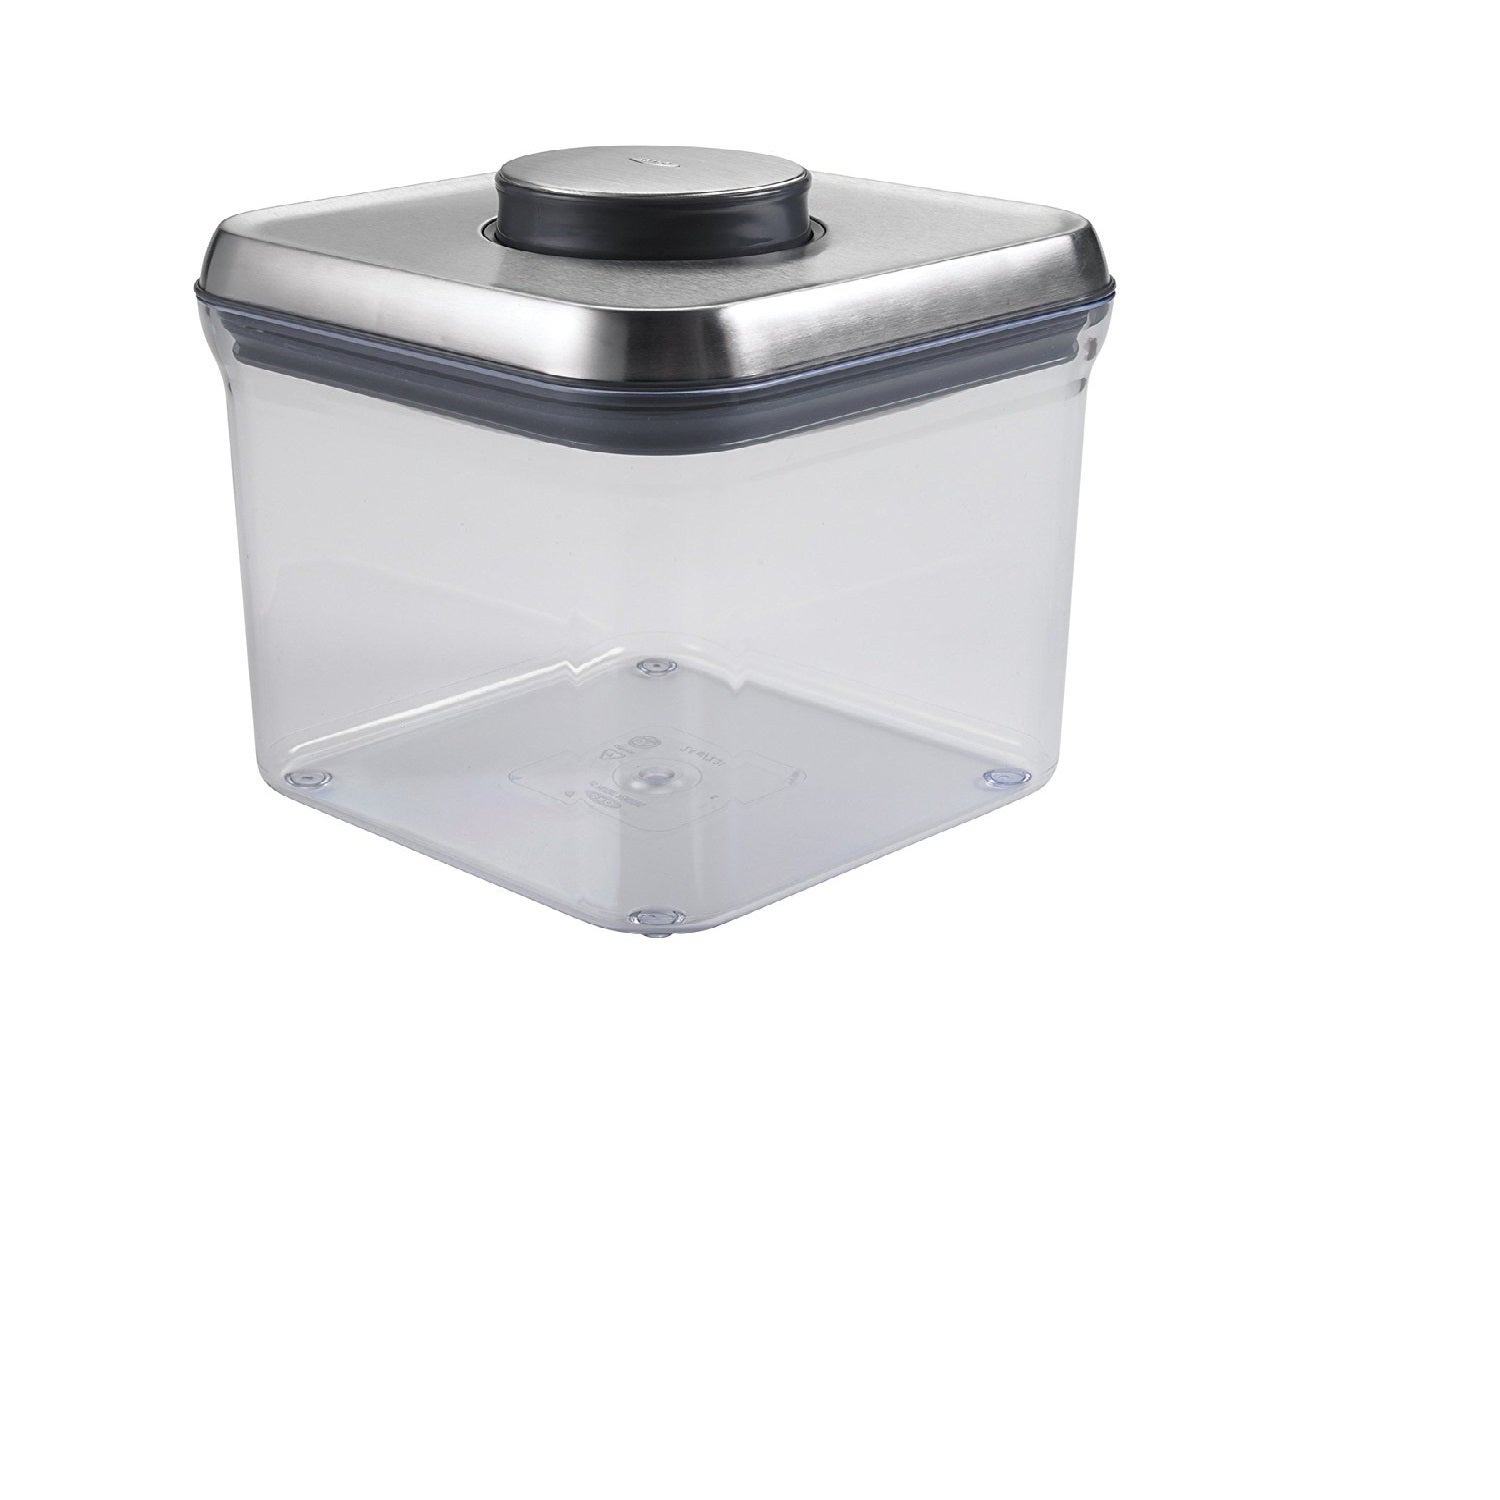 LTD OXO Big Square Steel POP Container (2.4 Quart) (Clear...